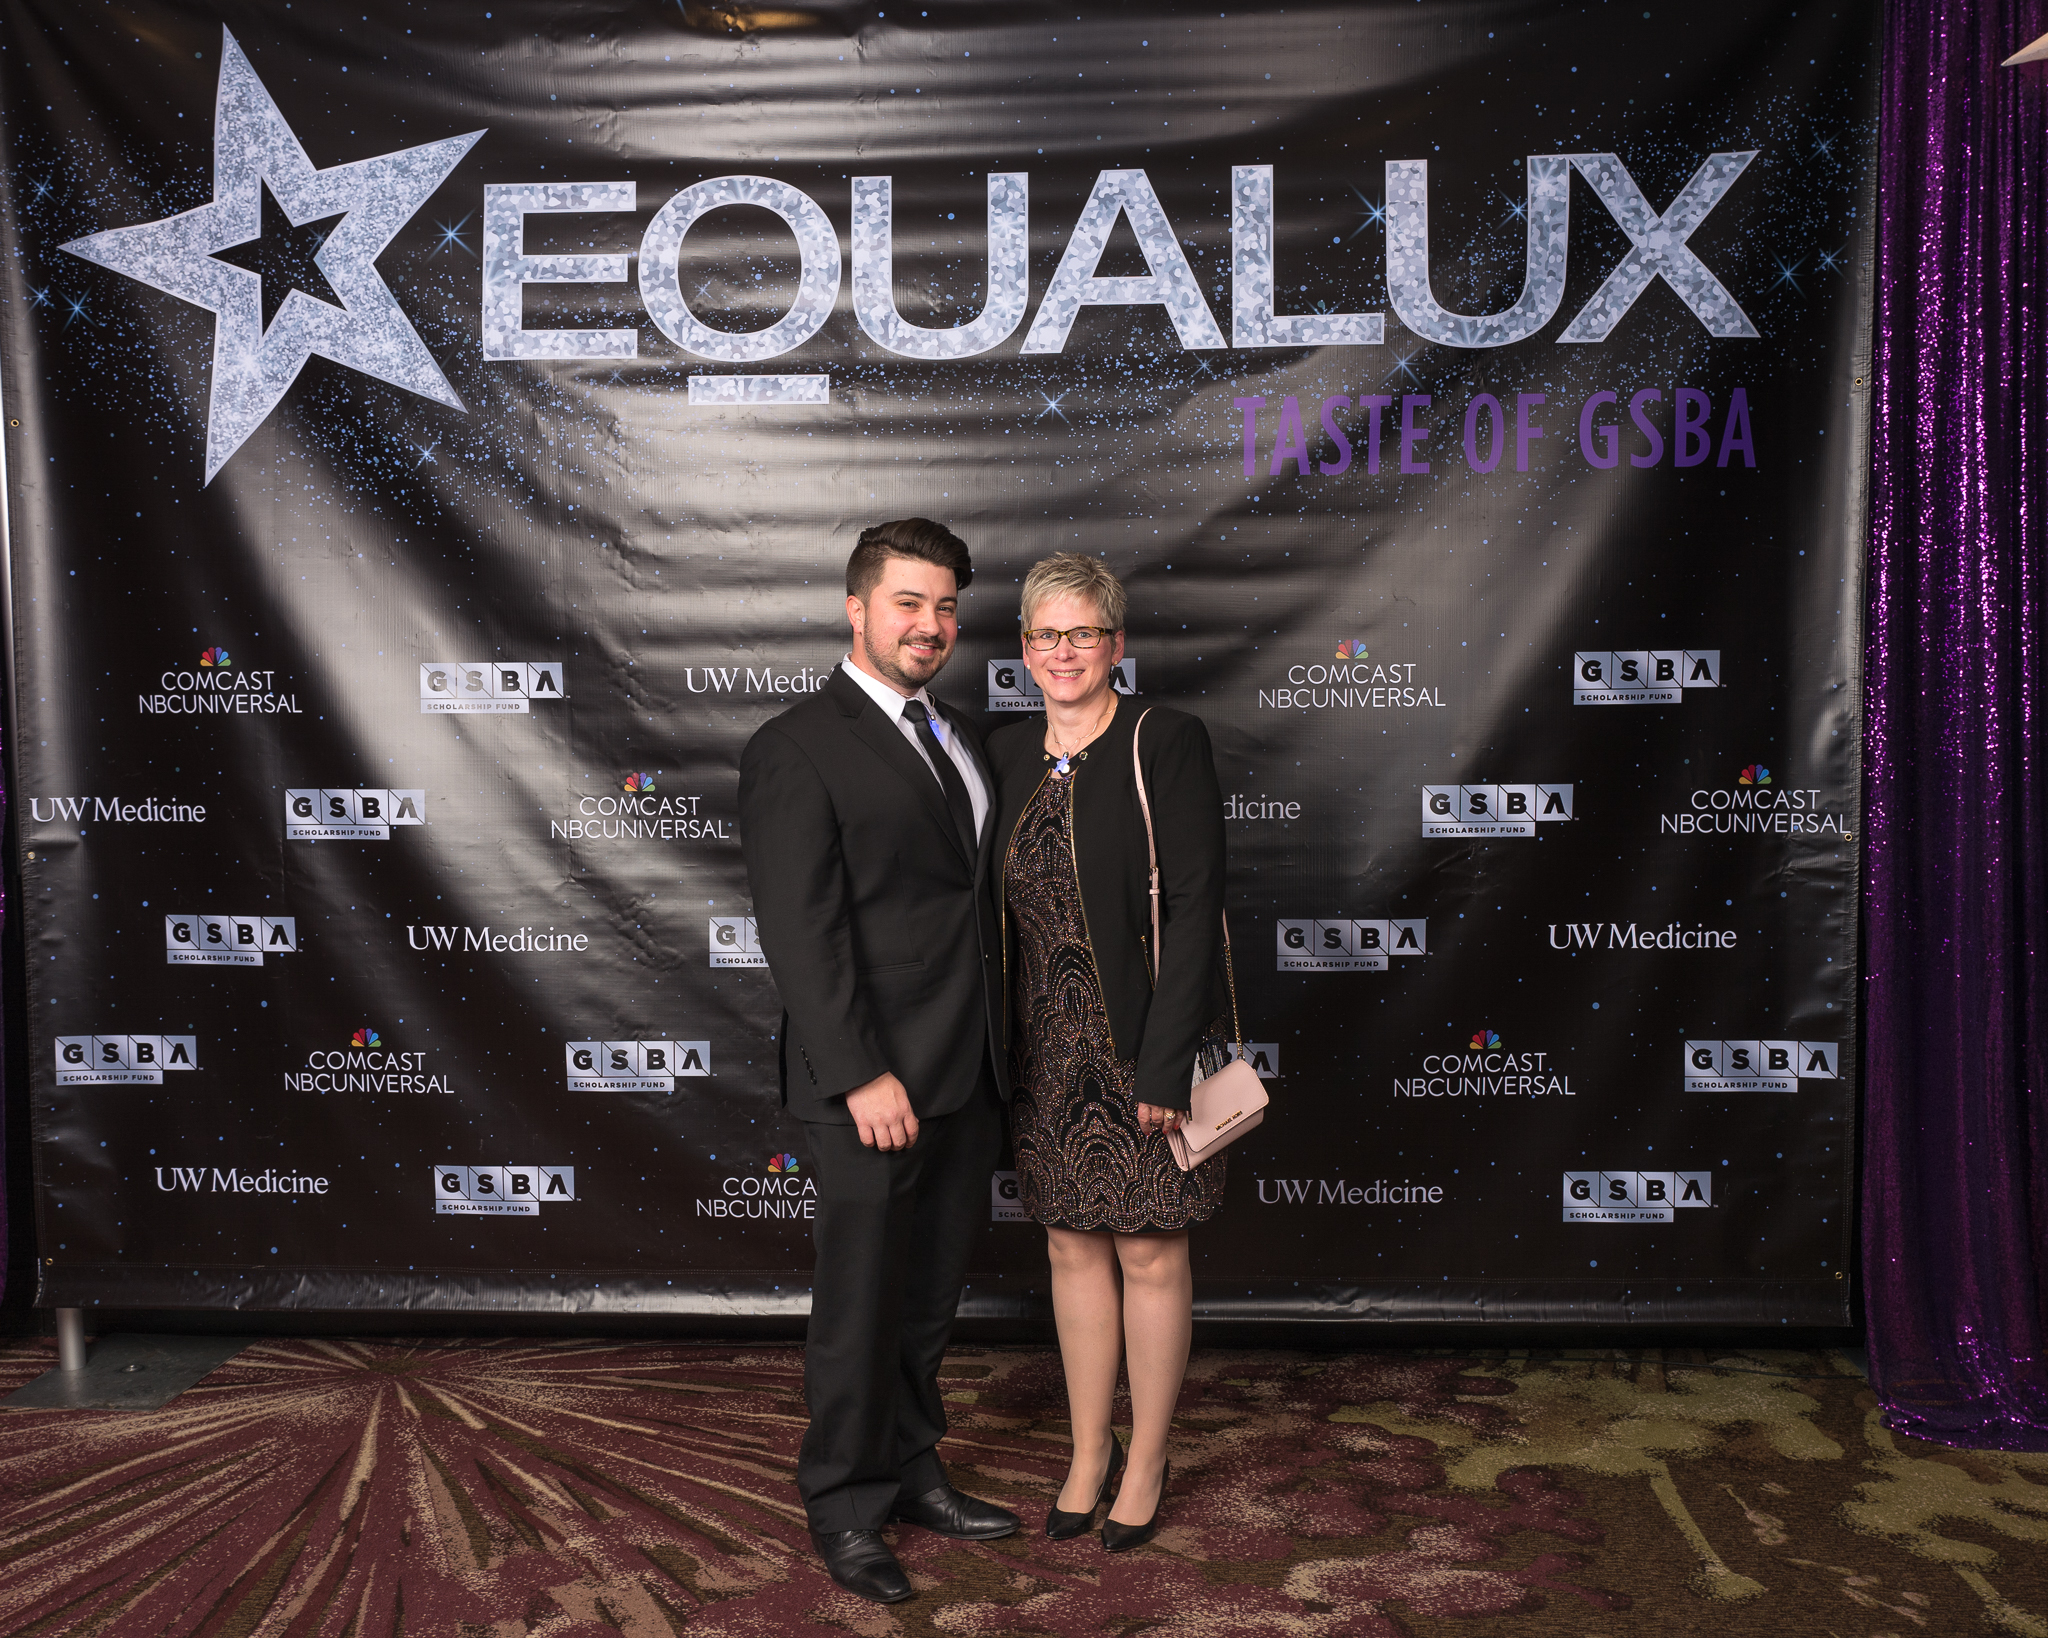 111718_GSBA EQUALUX at The Westin Seattle (Credit- Nate Gowdy)-103.jpg